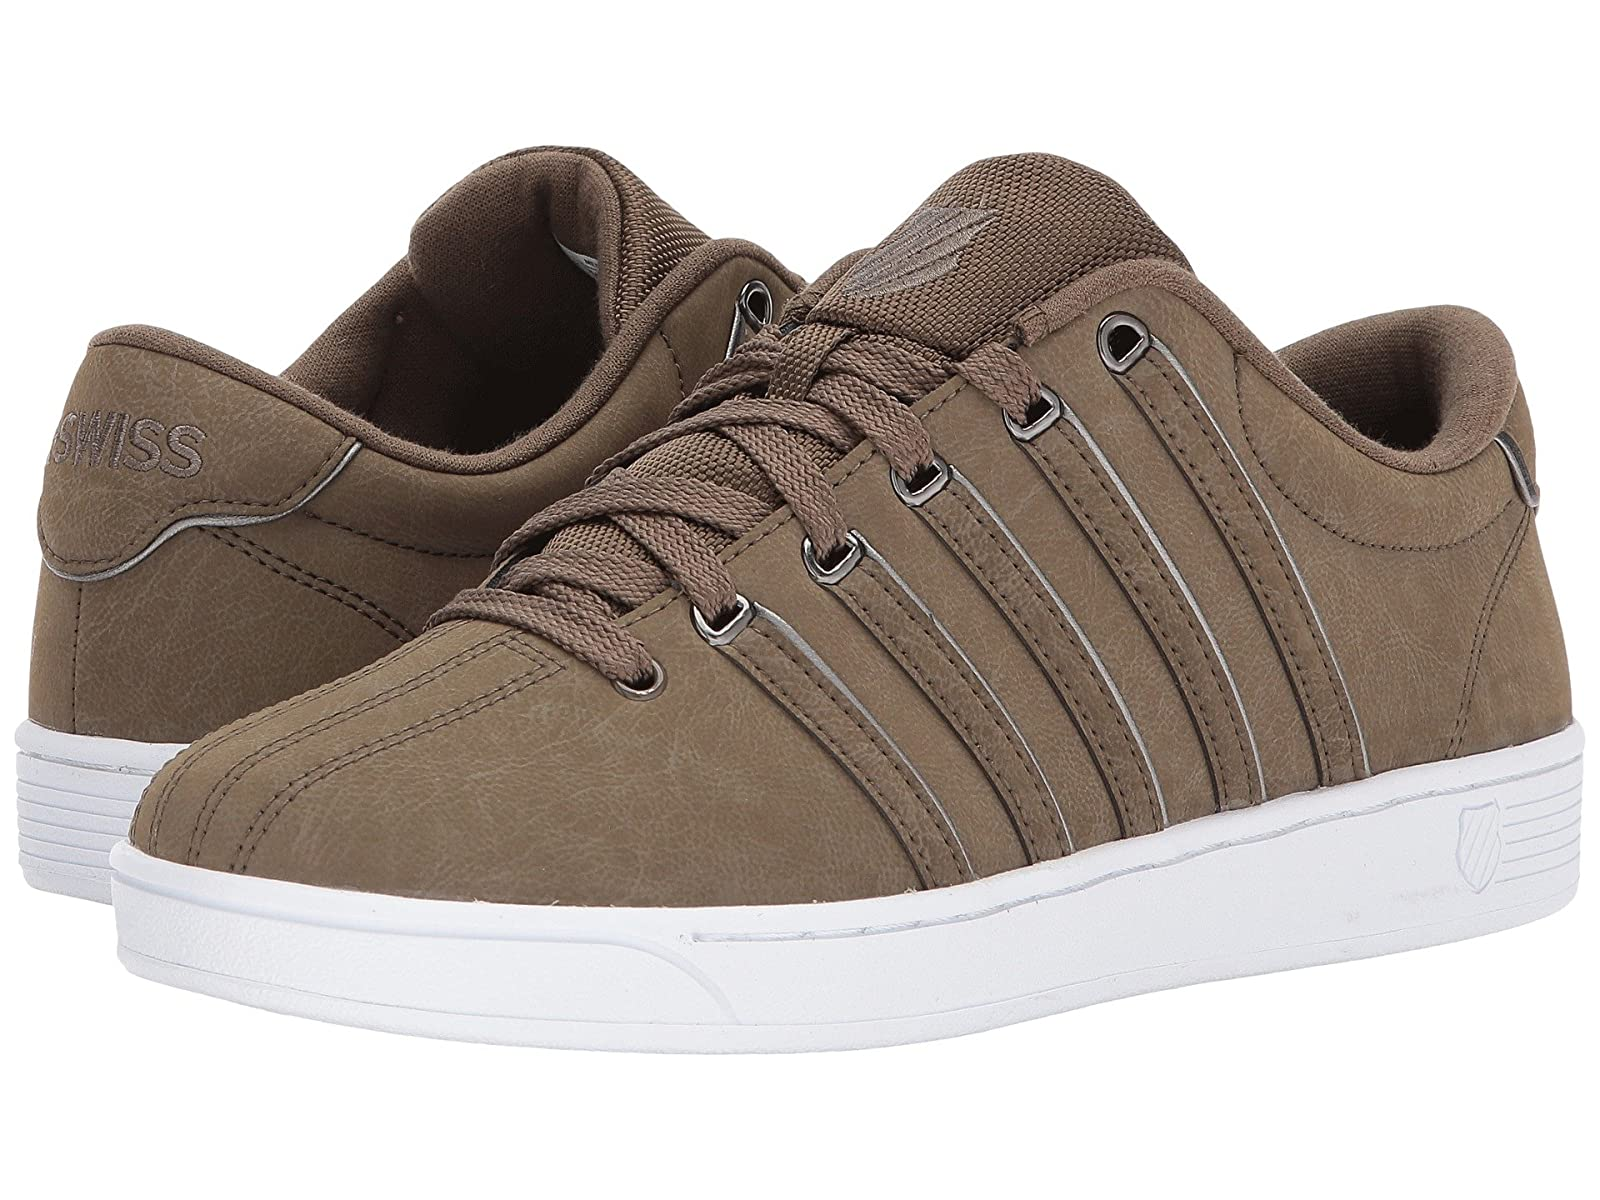 K-Swiss Court Pro II SP PCMFCheap and distinctive eye-catching shoes